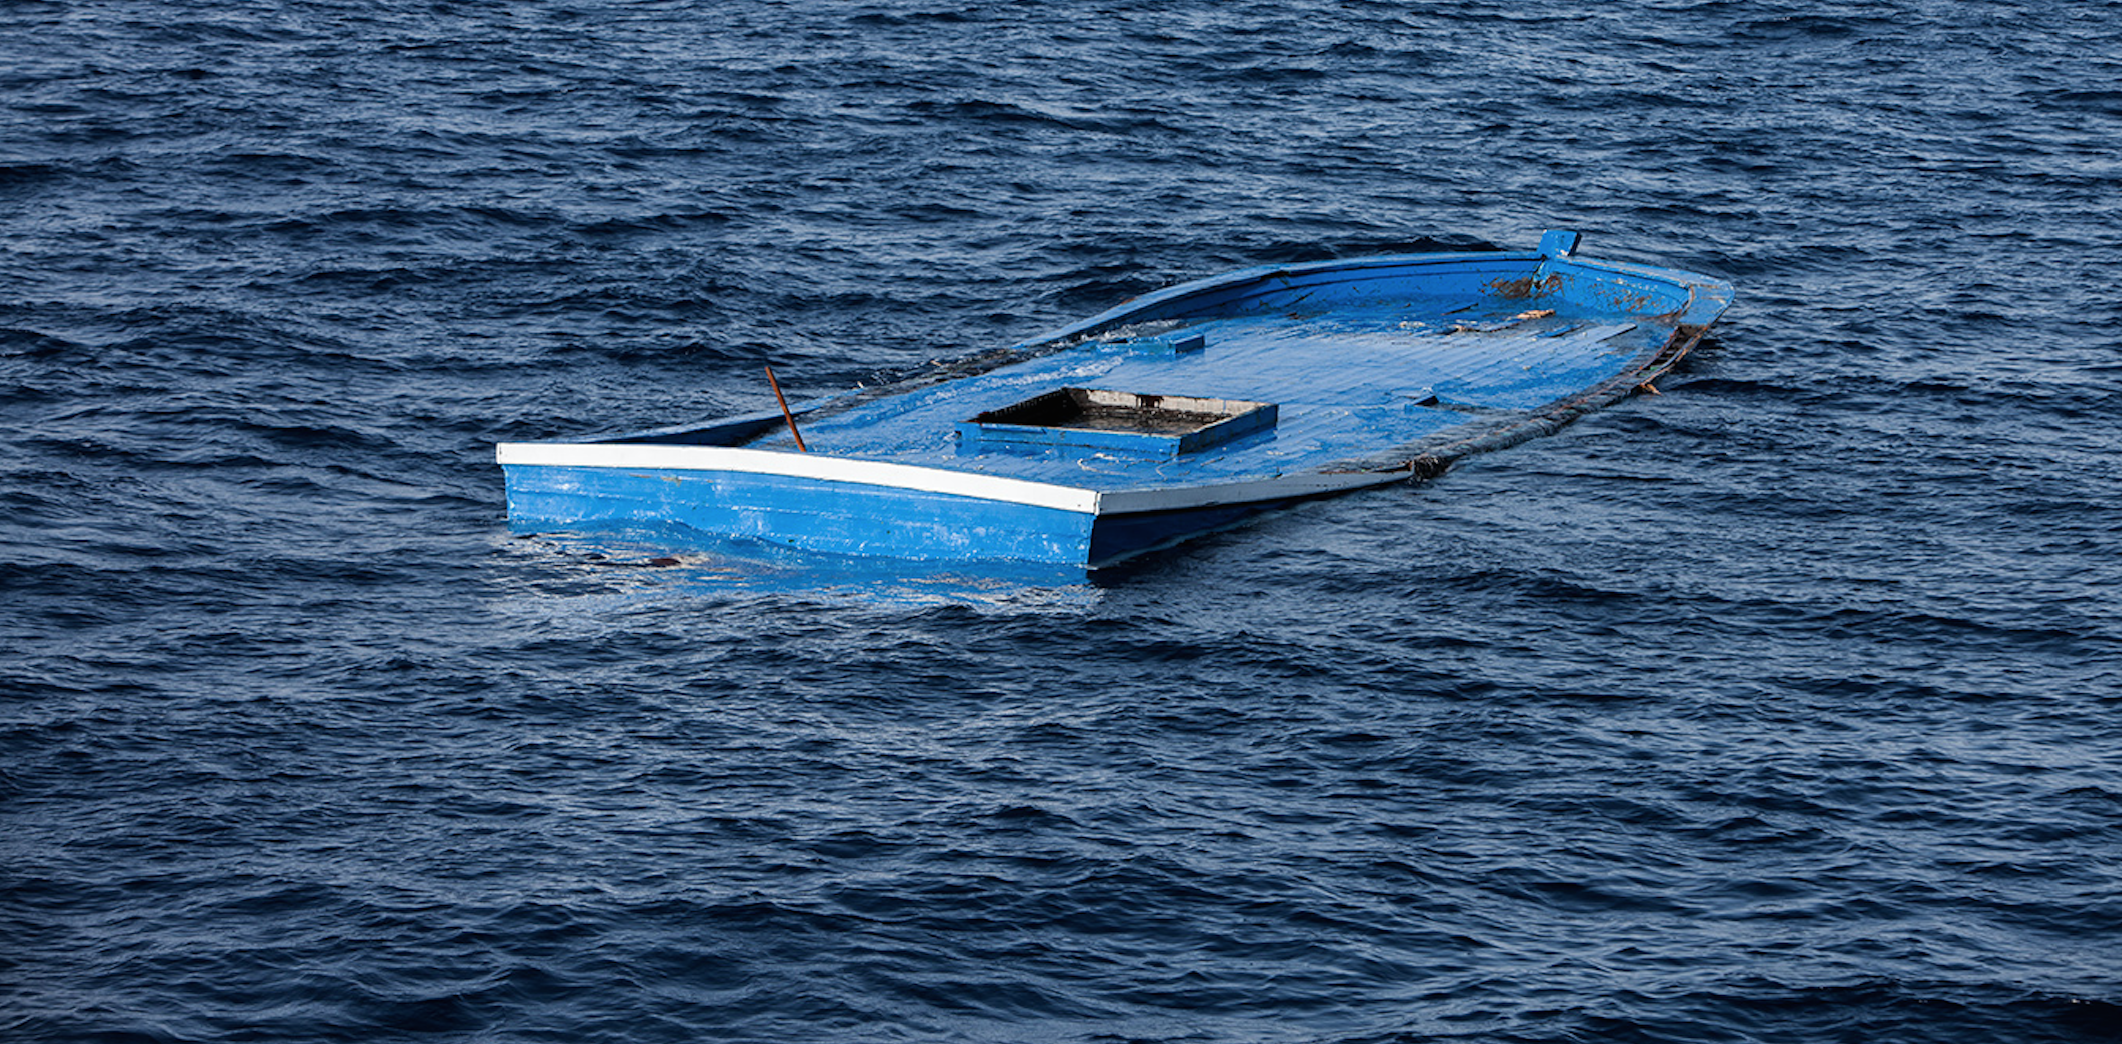 UPDATED: Boat with 700 From Alexandria Capsizes off Crete | Xchange